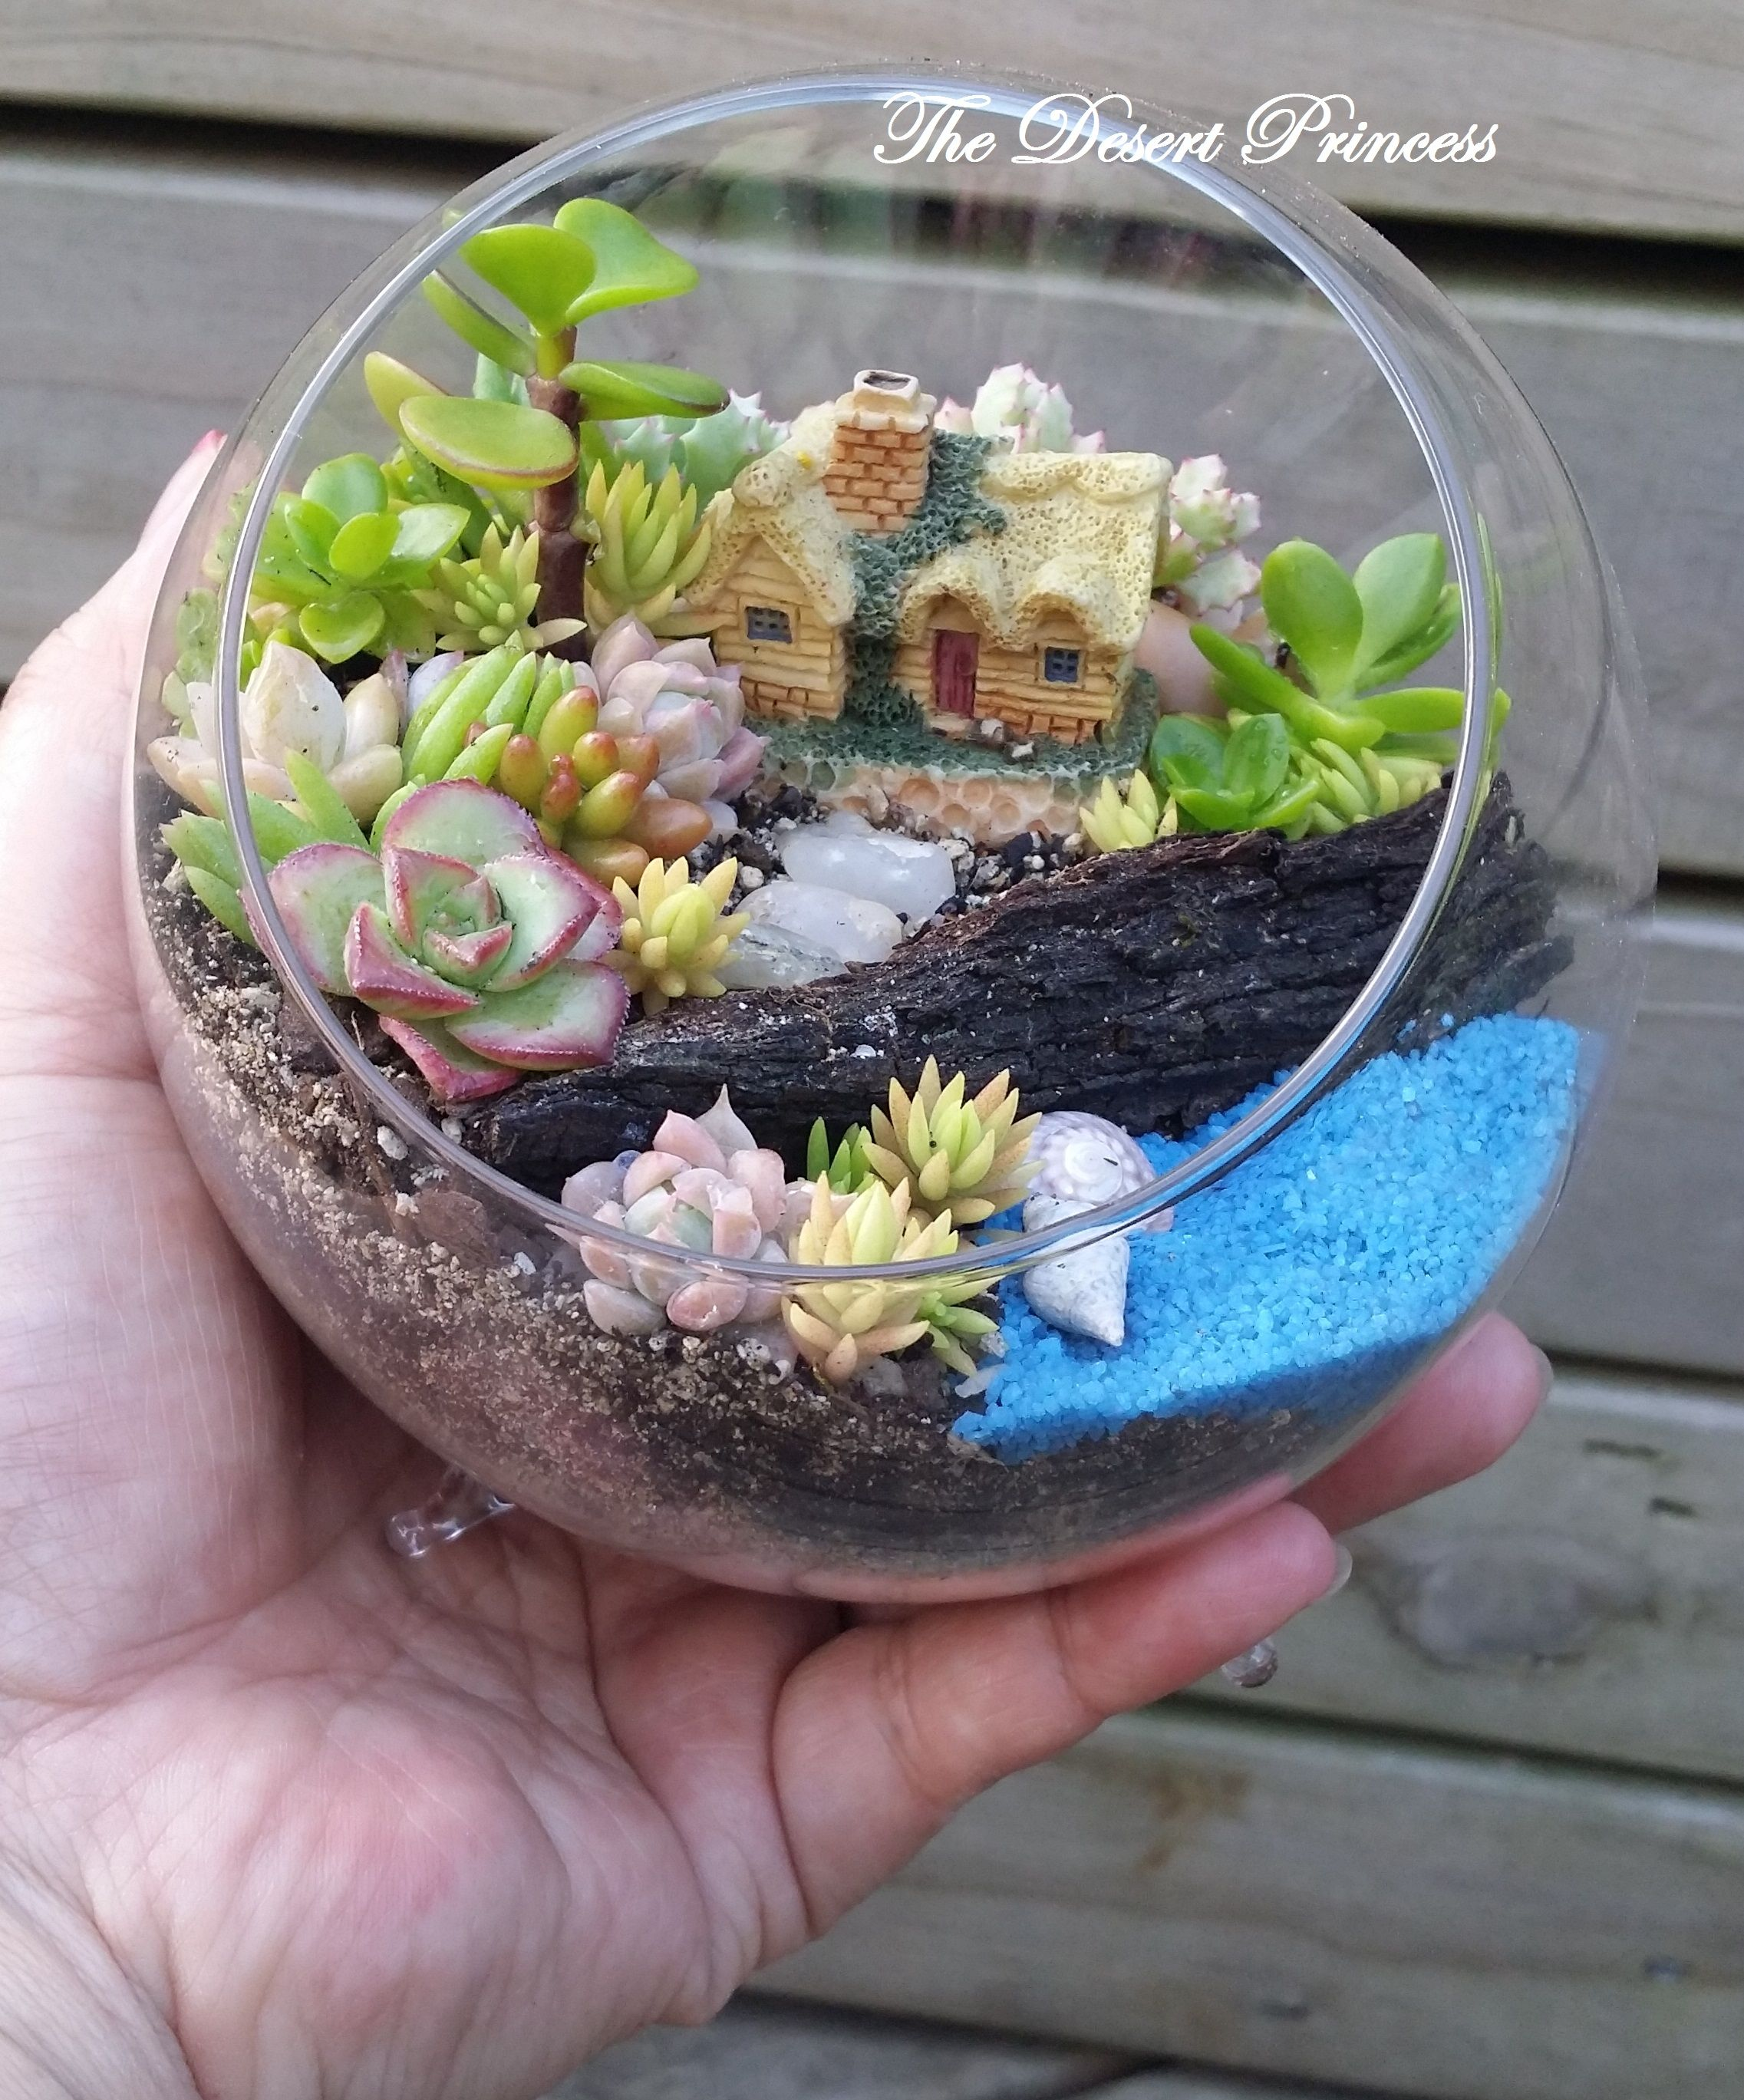 Lovely Succulent Fairy Garden Terrarium Design By The Desert Princess  Www.facebook.com/thedesertprincess1006